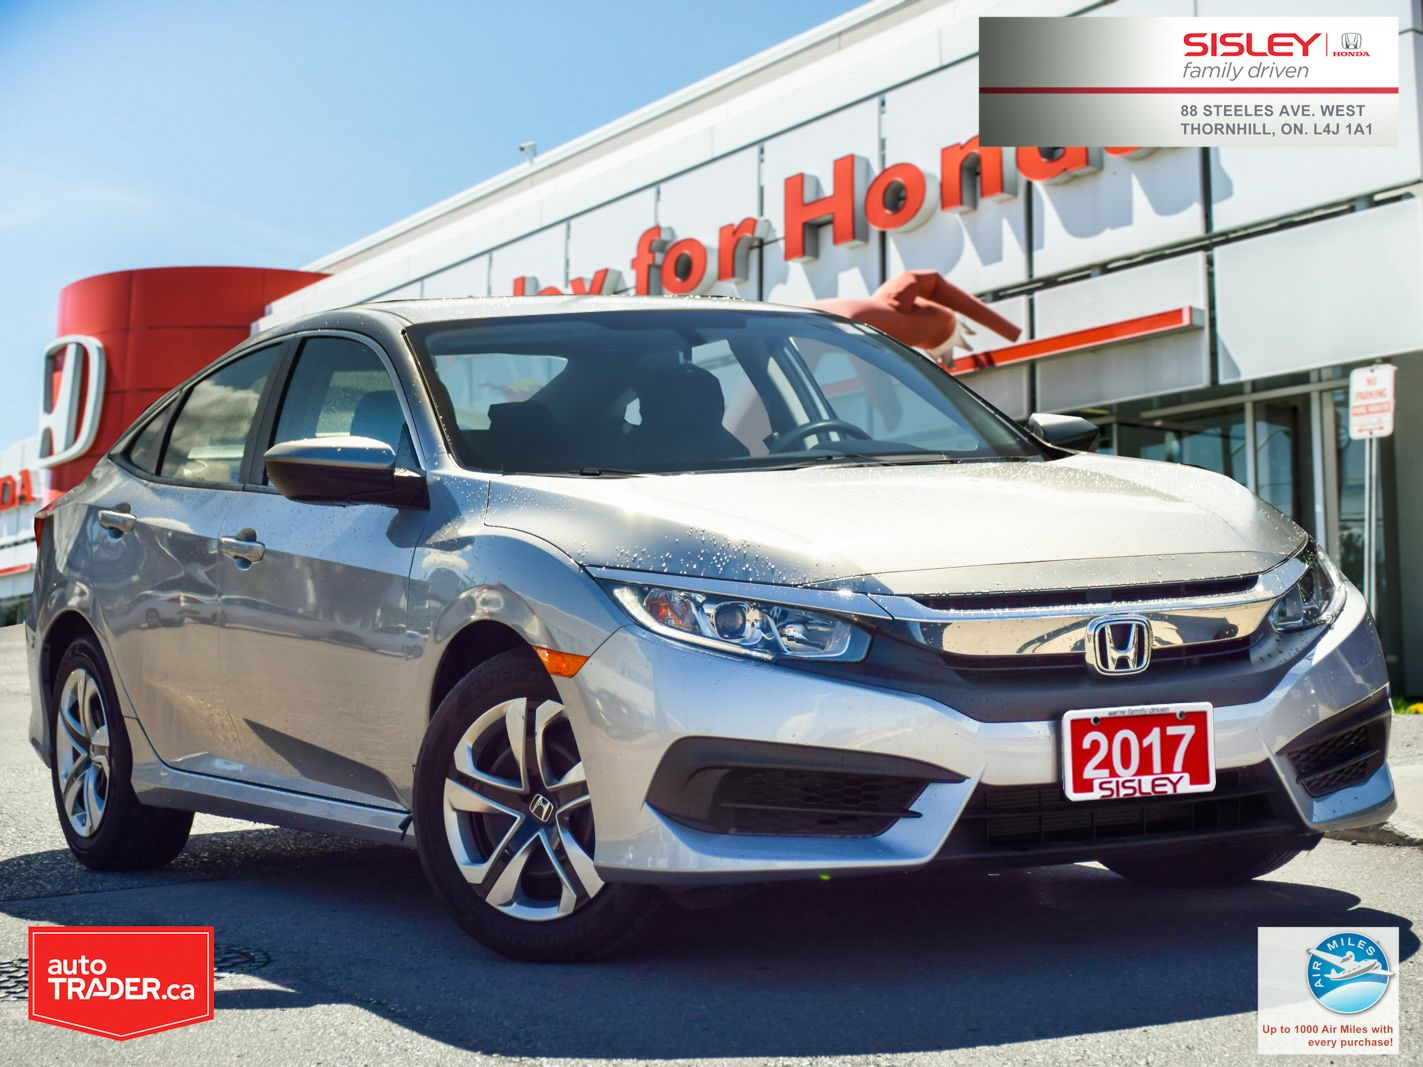 2017 Honda Civic Sedan Image